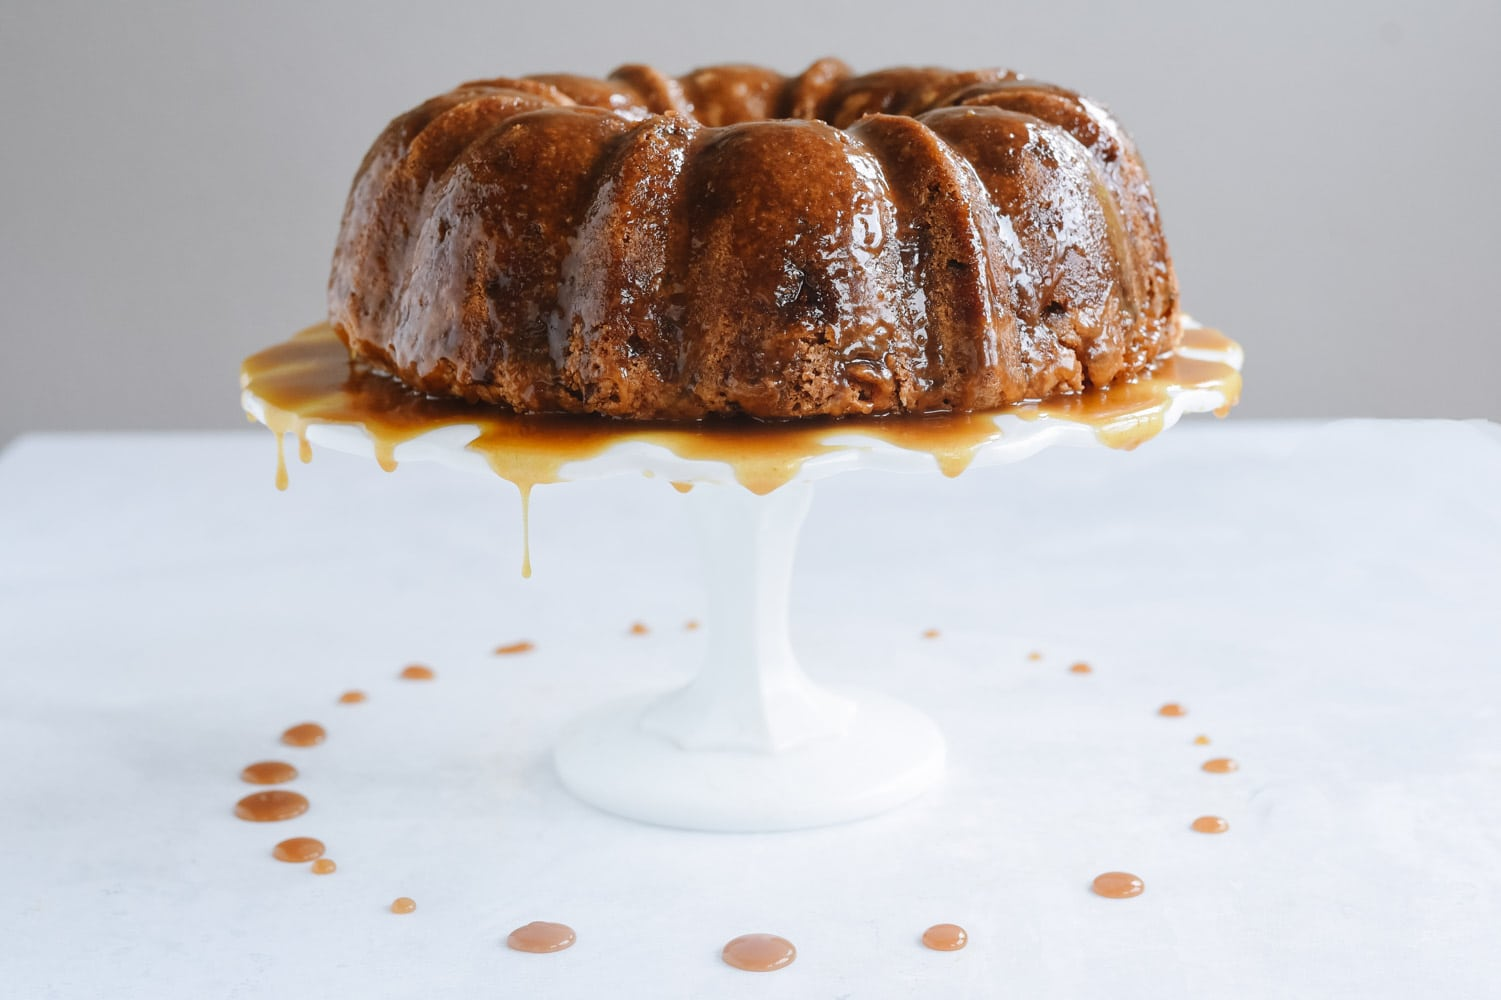 Apple Bundt Cake on a cake stand